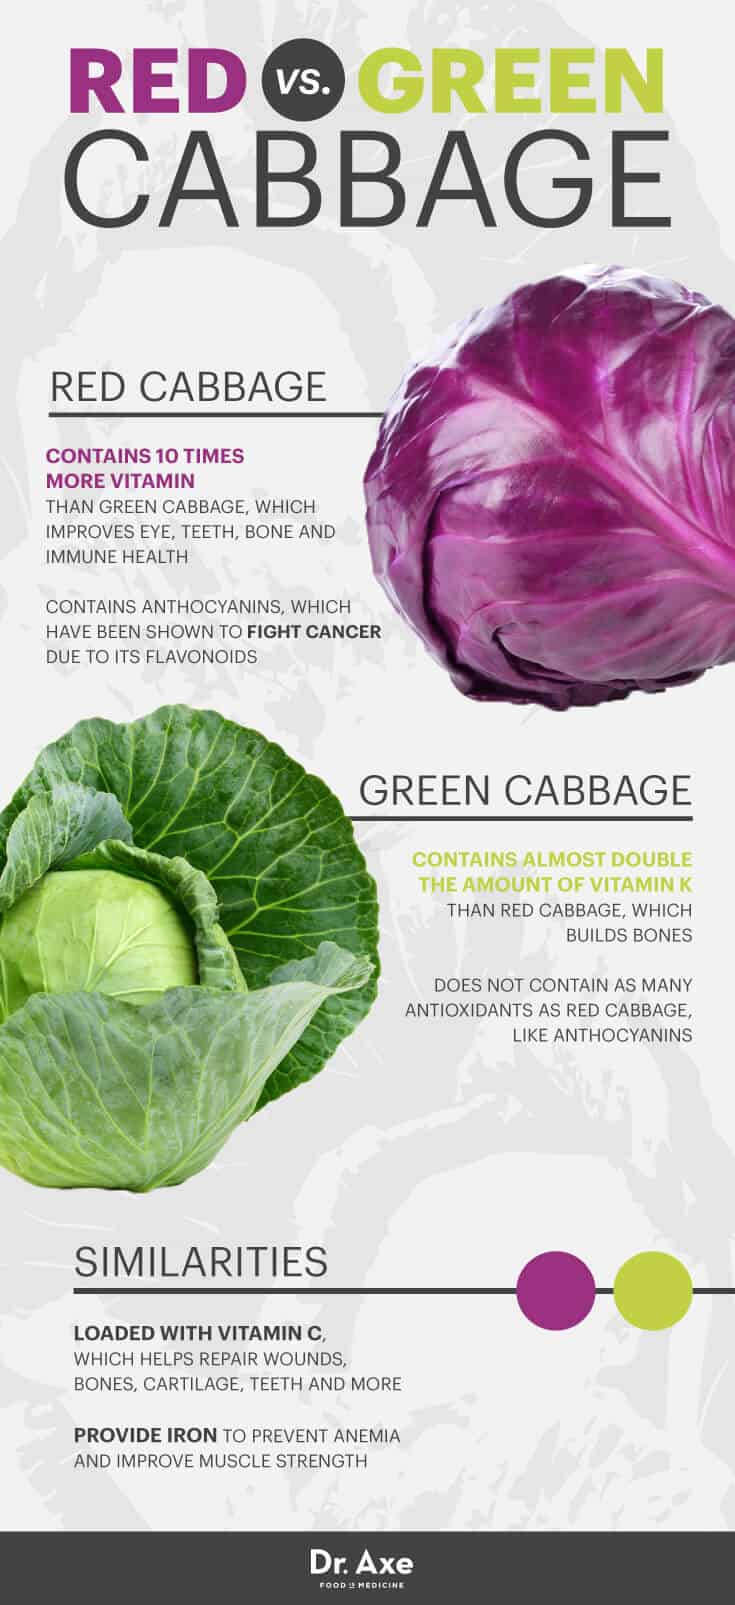 Red cabbage vs. green cabbage - Dr. Axe